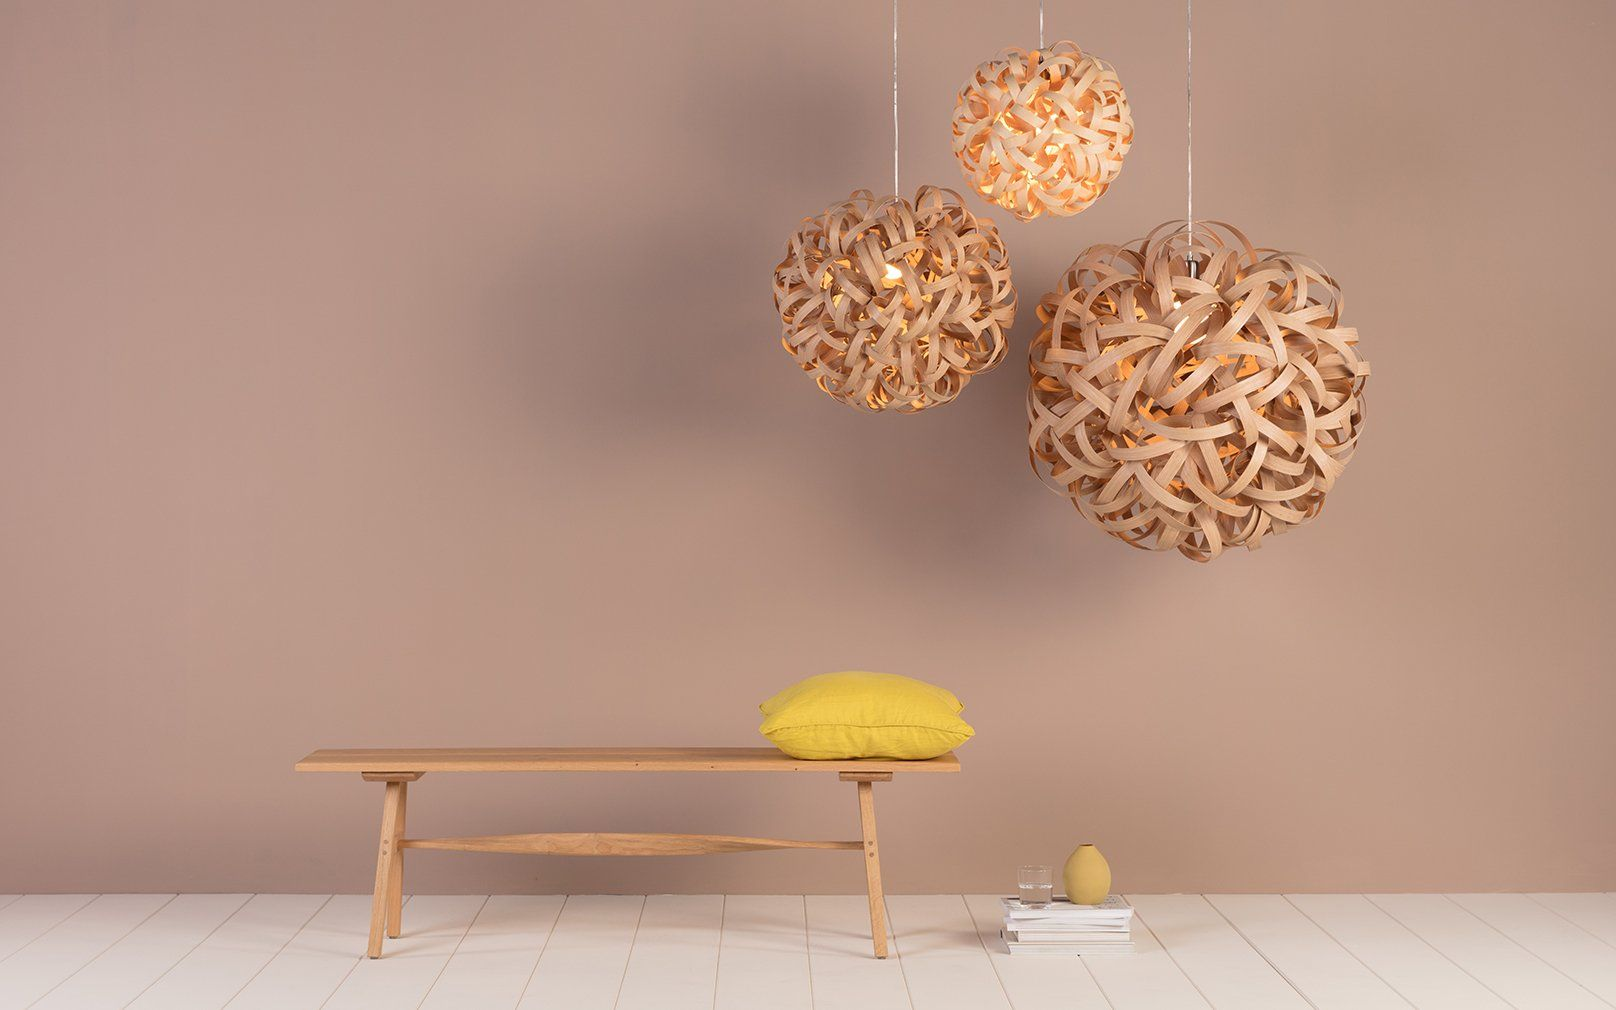 A Trio Of Wooden Pendants From The Tom Raffield No 1 Lighting Range Look Eye Catching Against A Blush Toned Backdrop Blush Tones Tom Raffield Lighting B